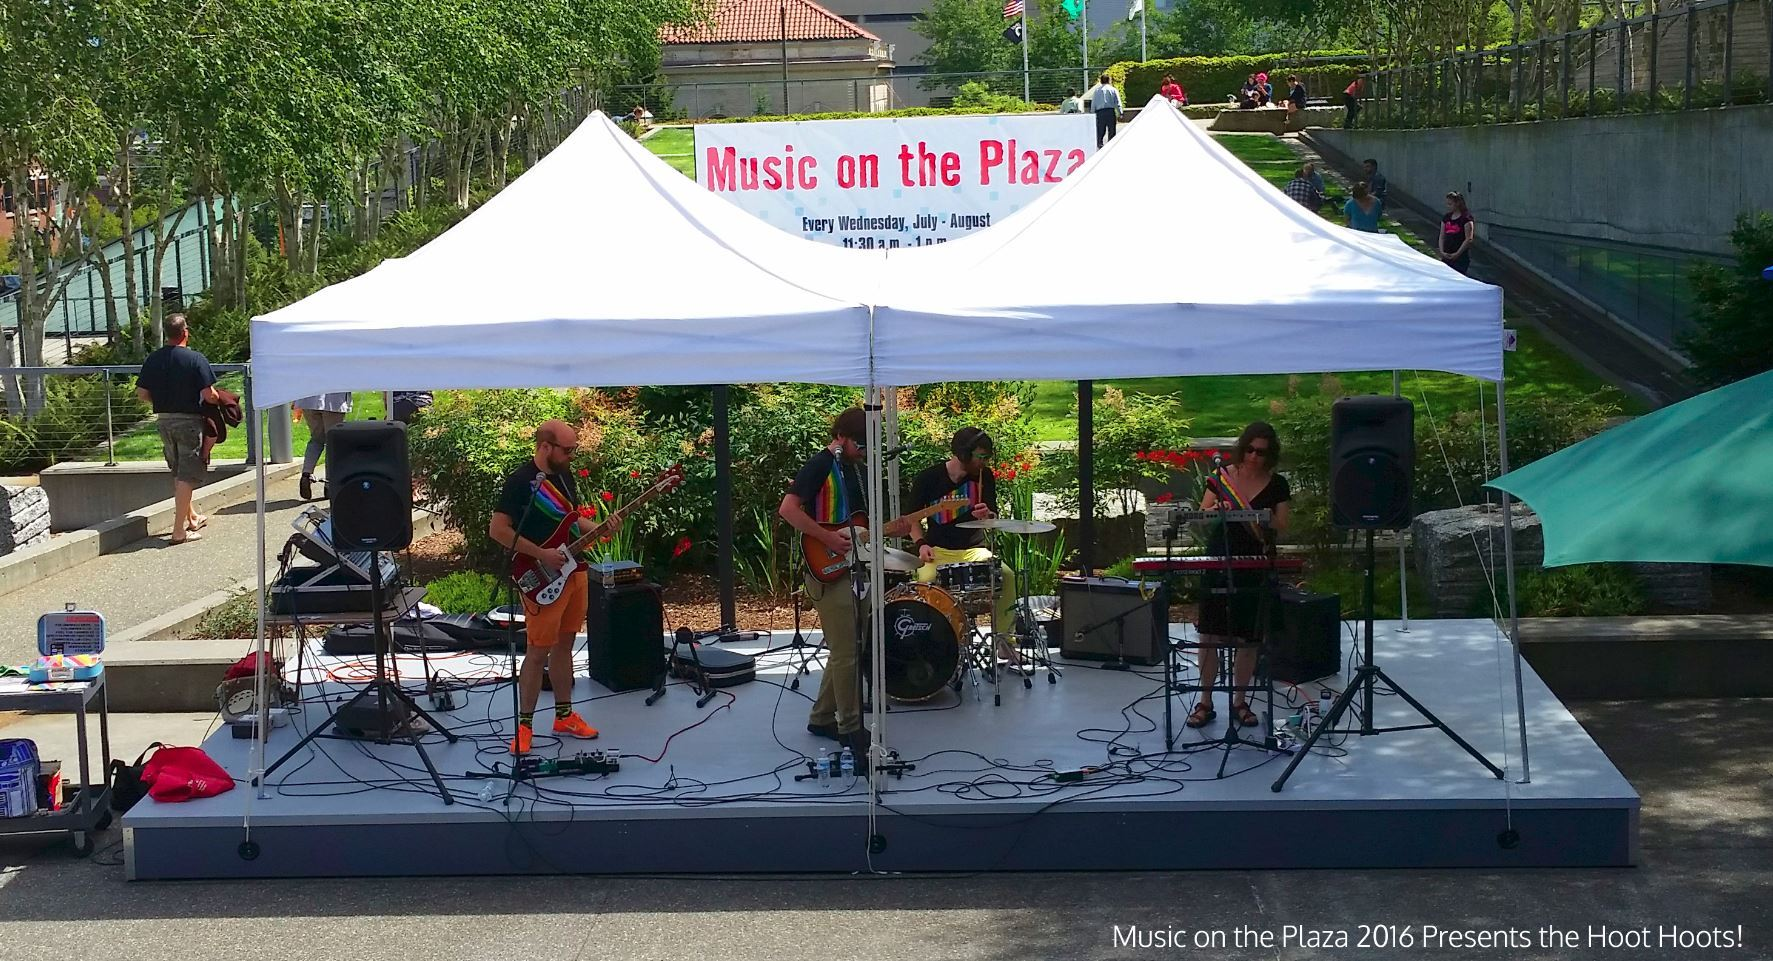 Music on the Plaza Presents the Hoot Hoots!